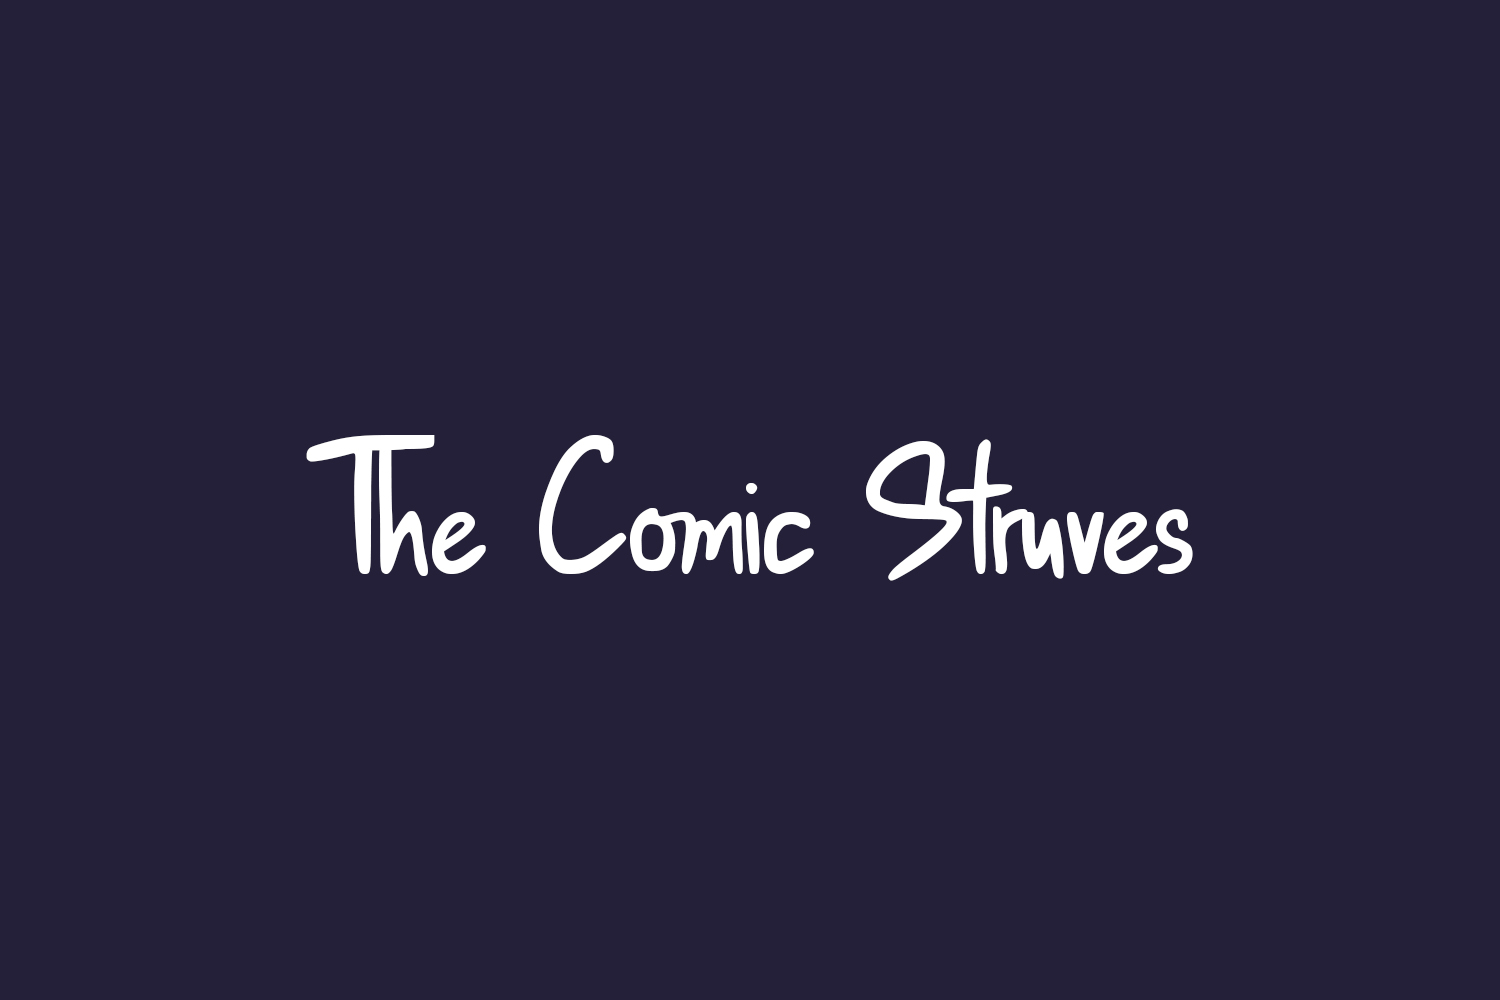 The Comic Struves Free Font